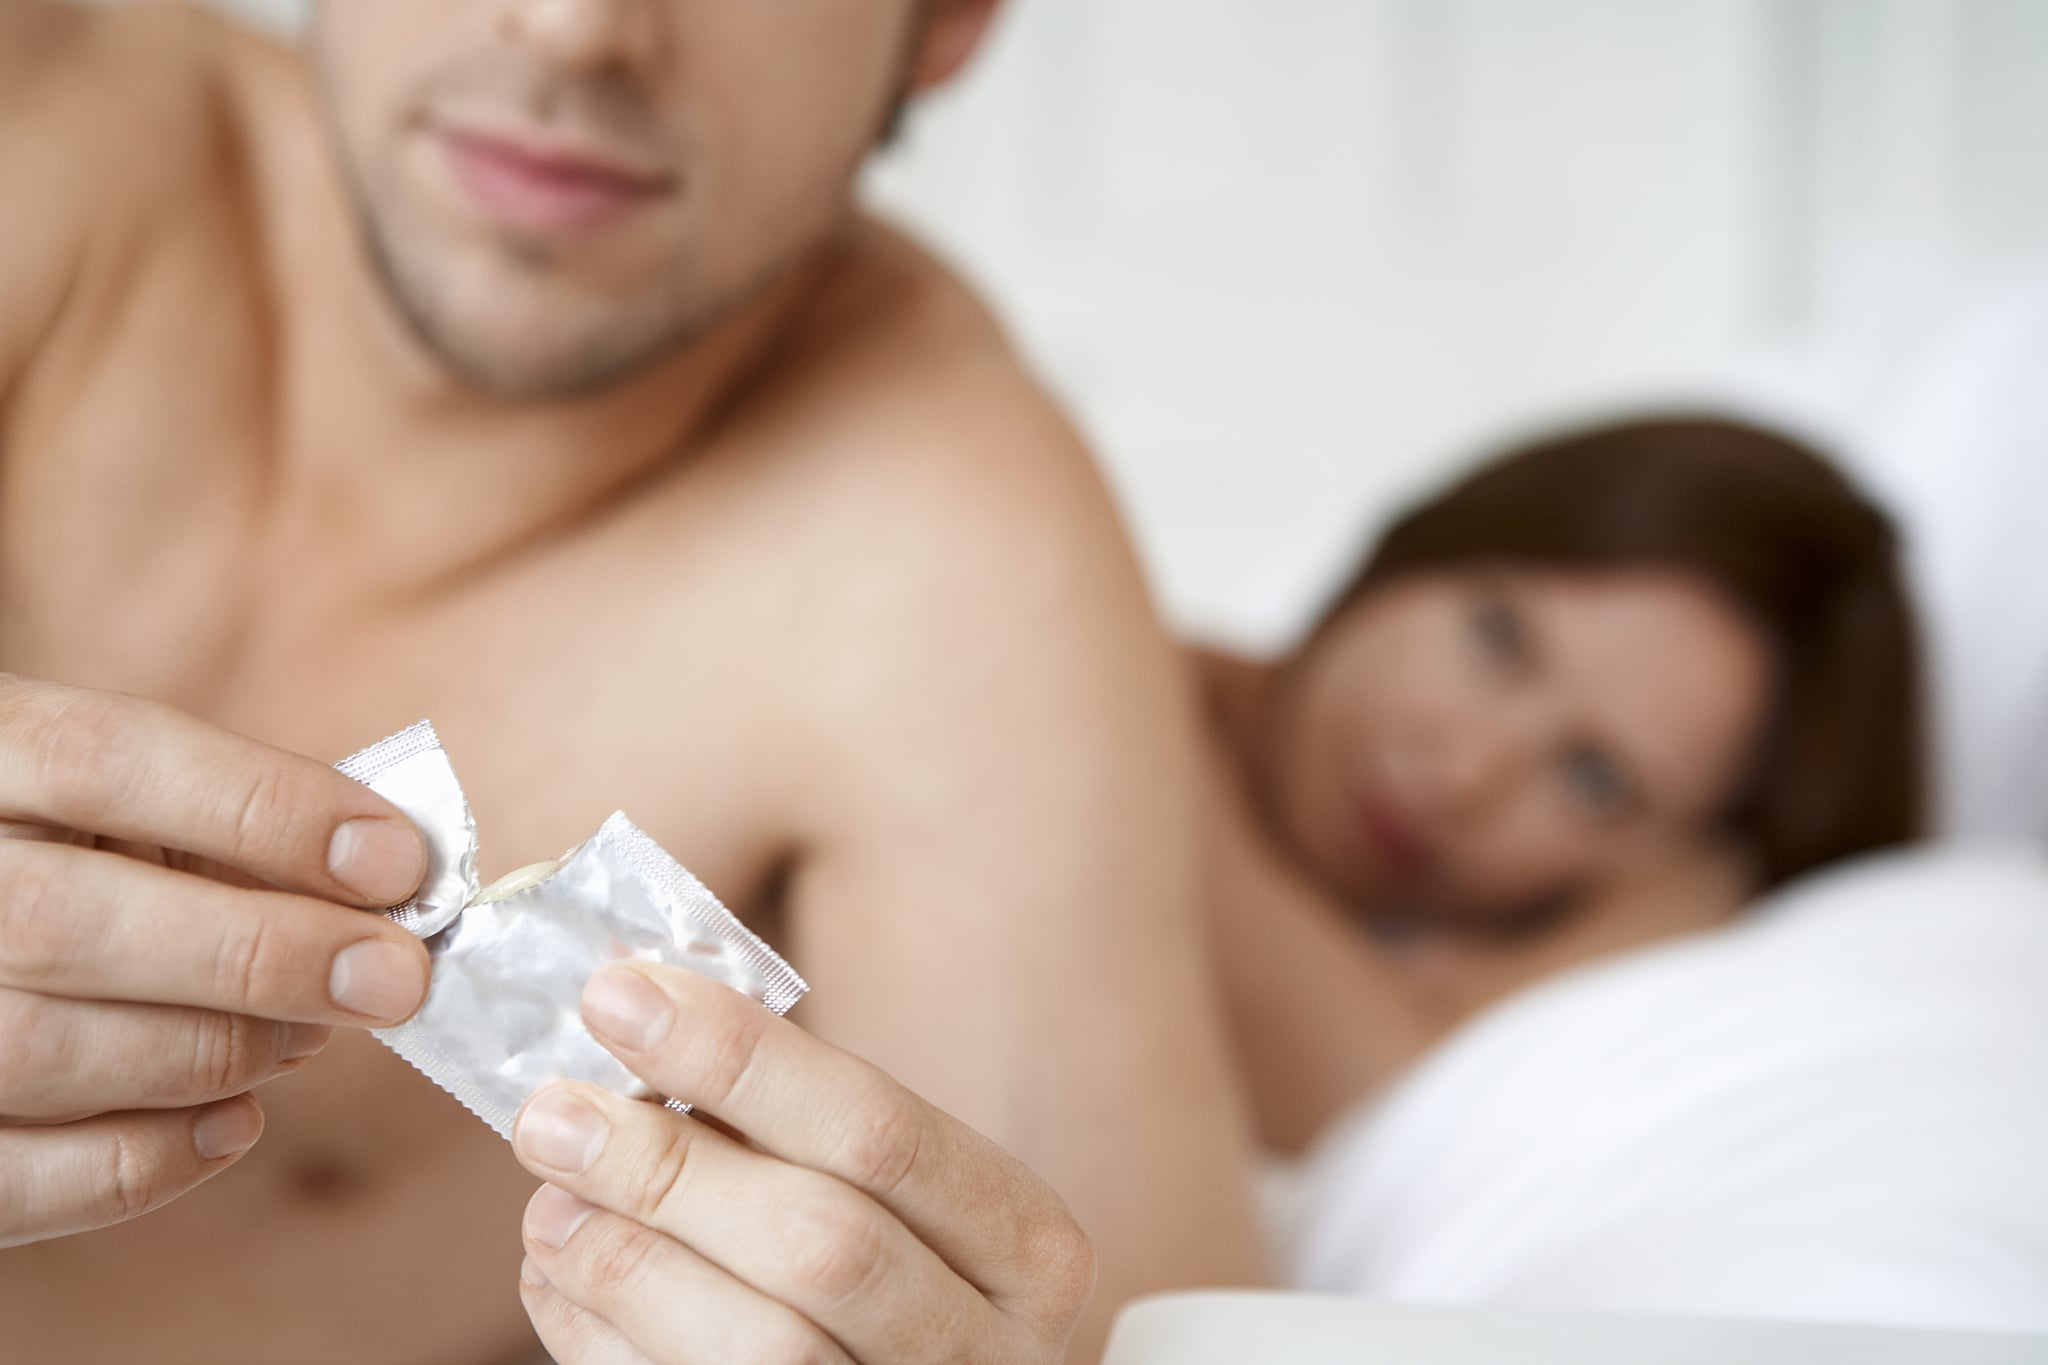 Wearing a condom during sex pictures